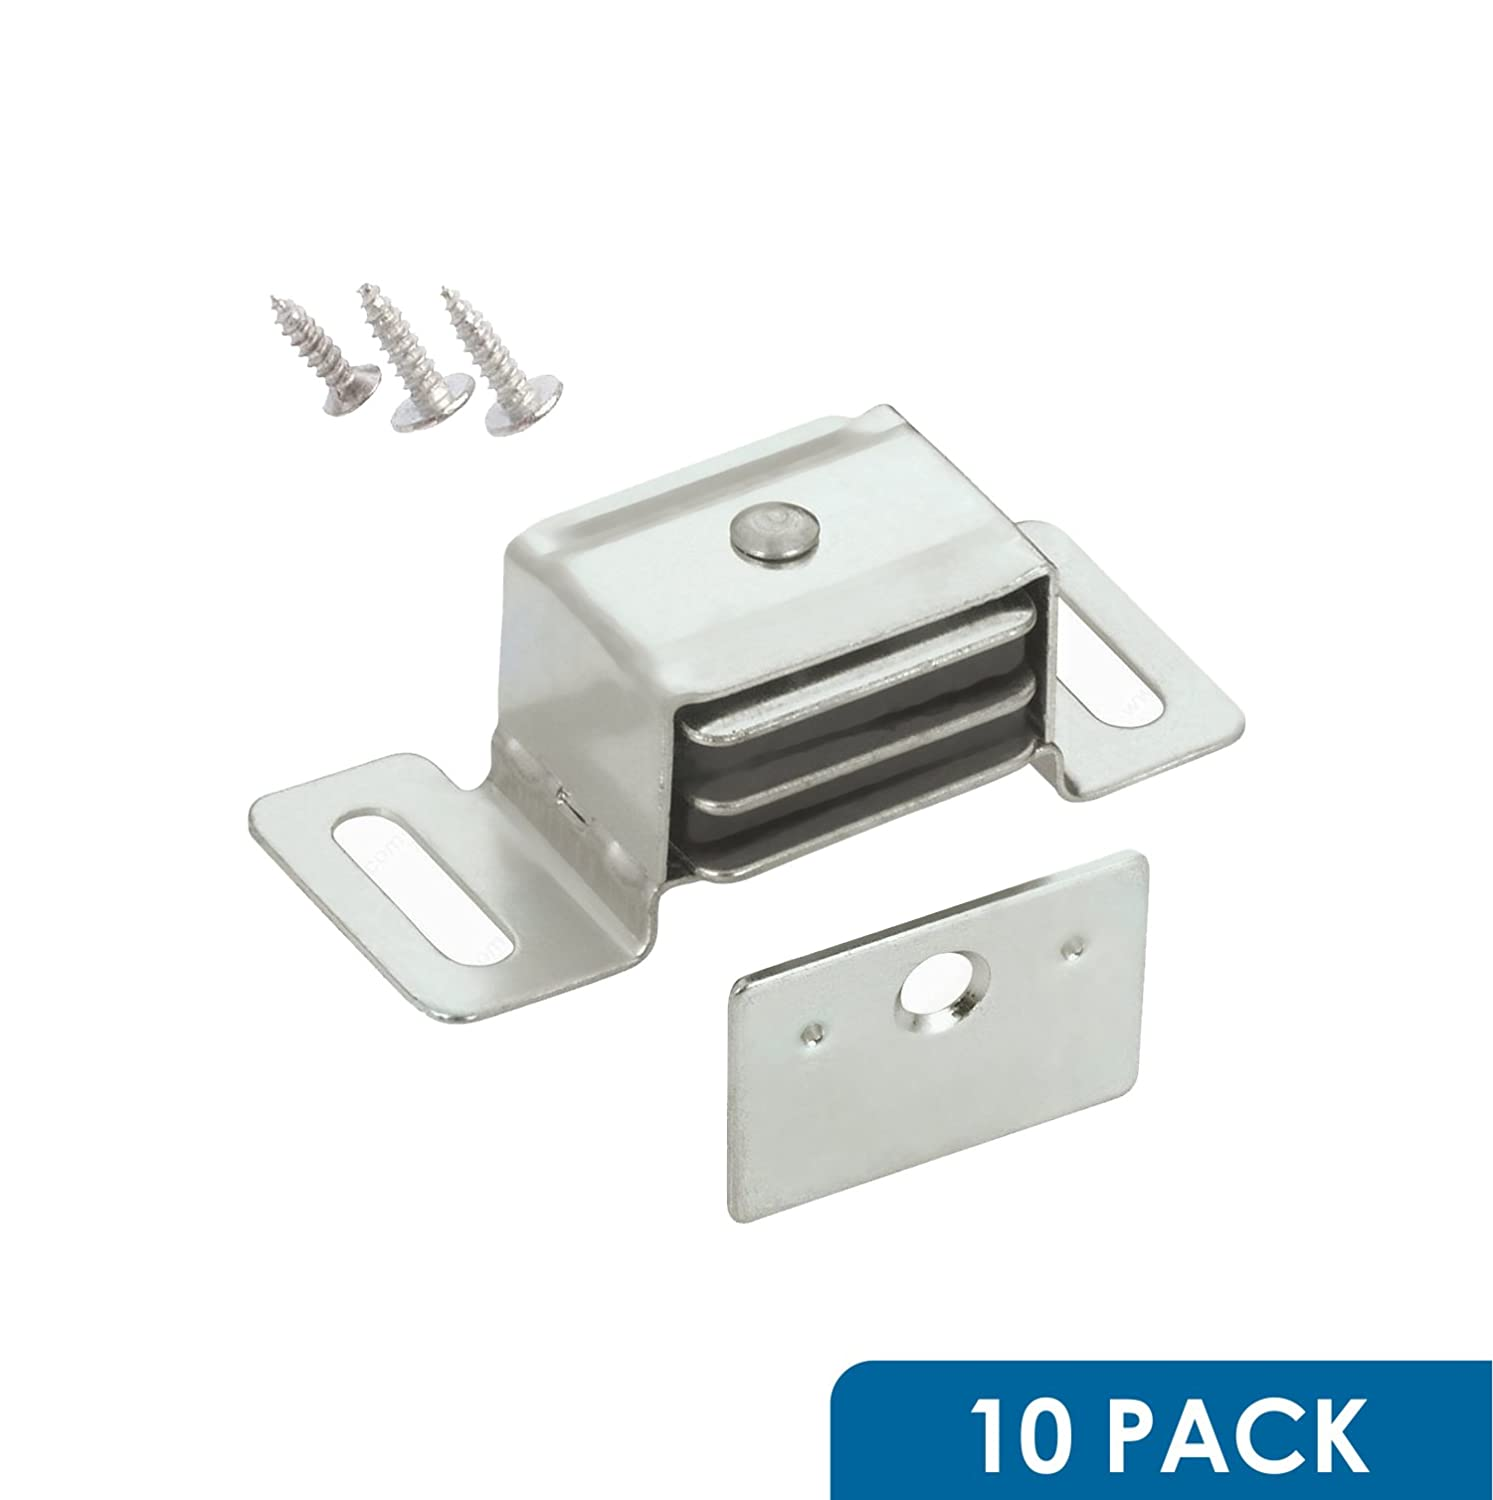 10 Pack Rok Hardware Double Side Strong Magnetic Catch Latch Cabinet Closet Drawer Doors